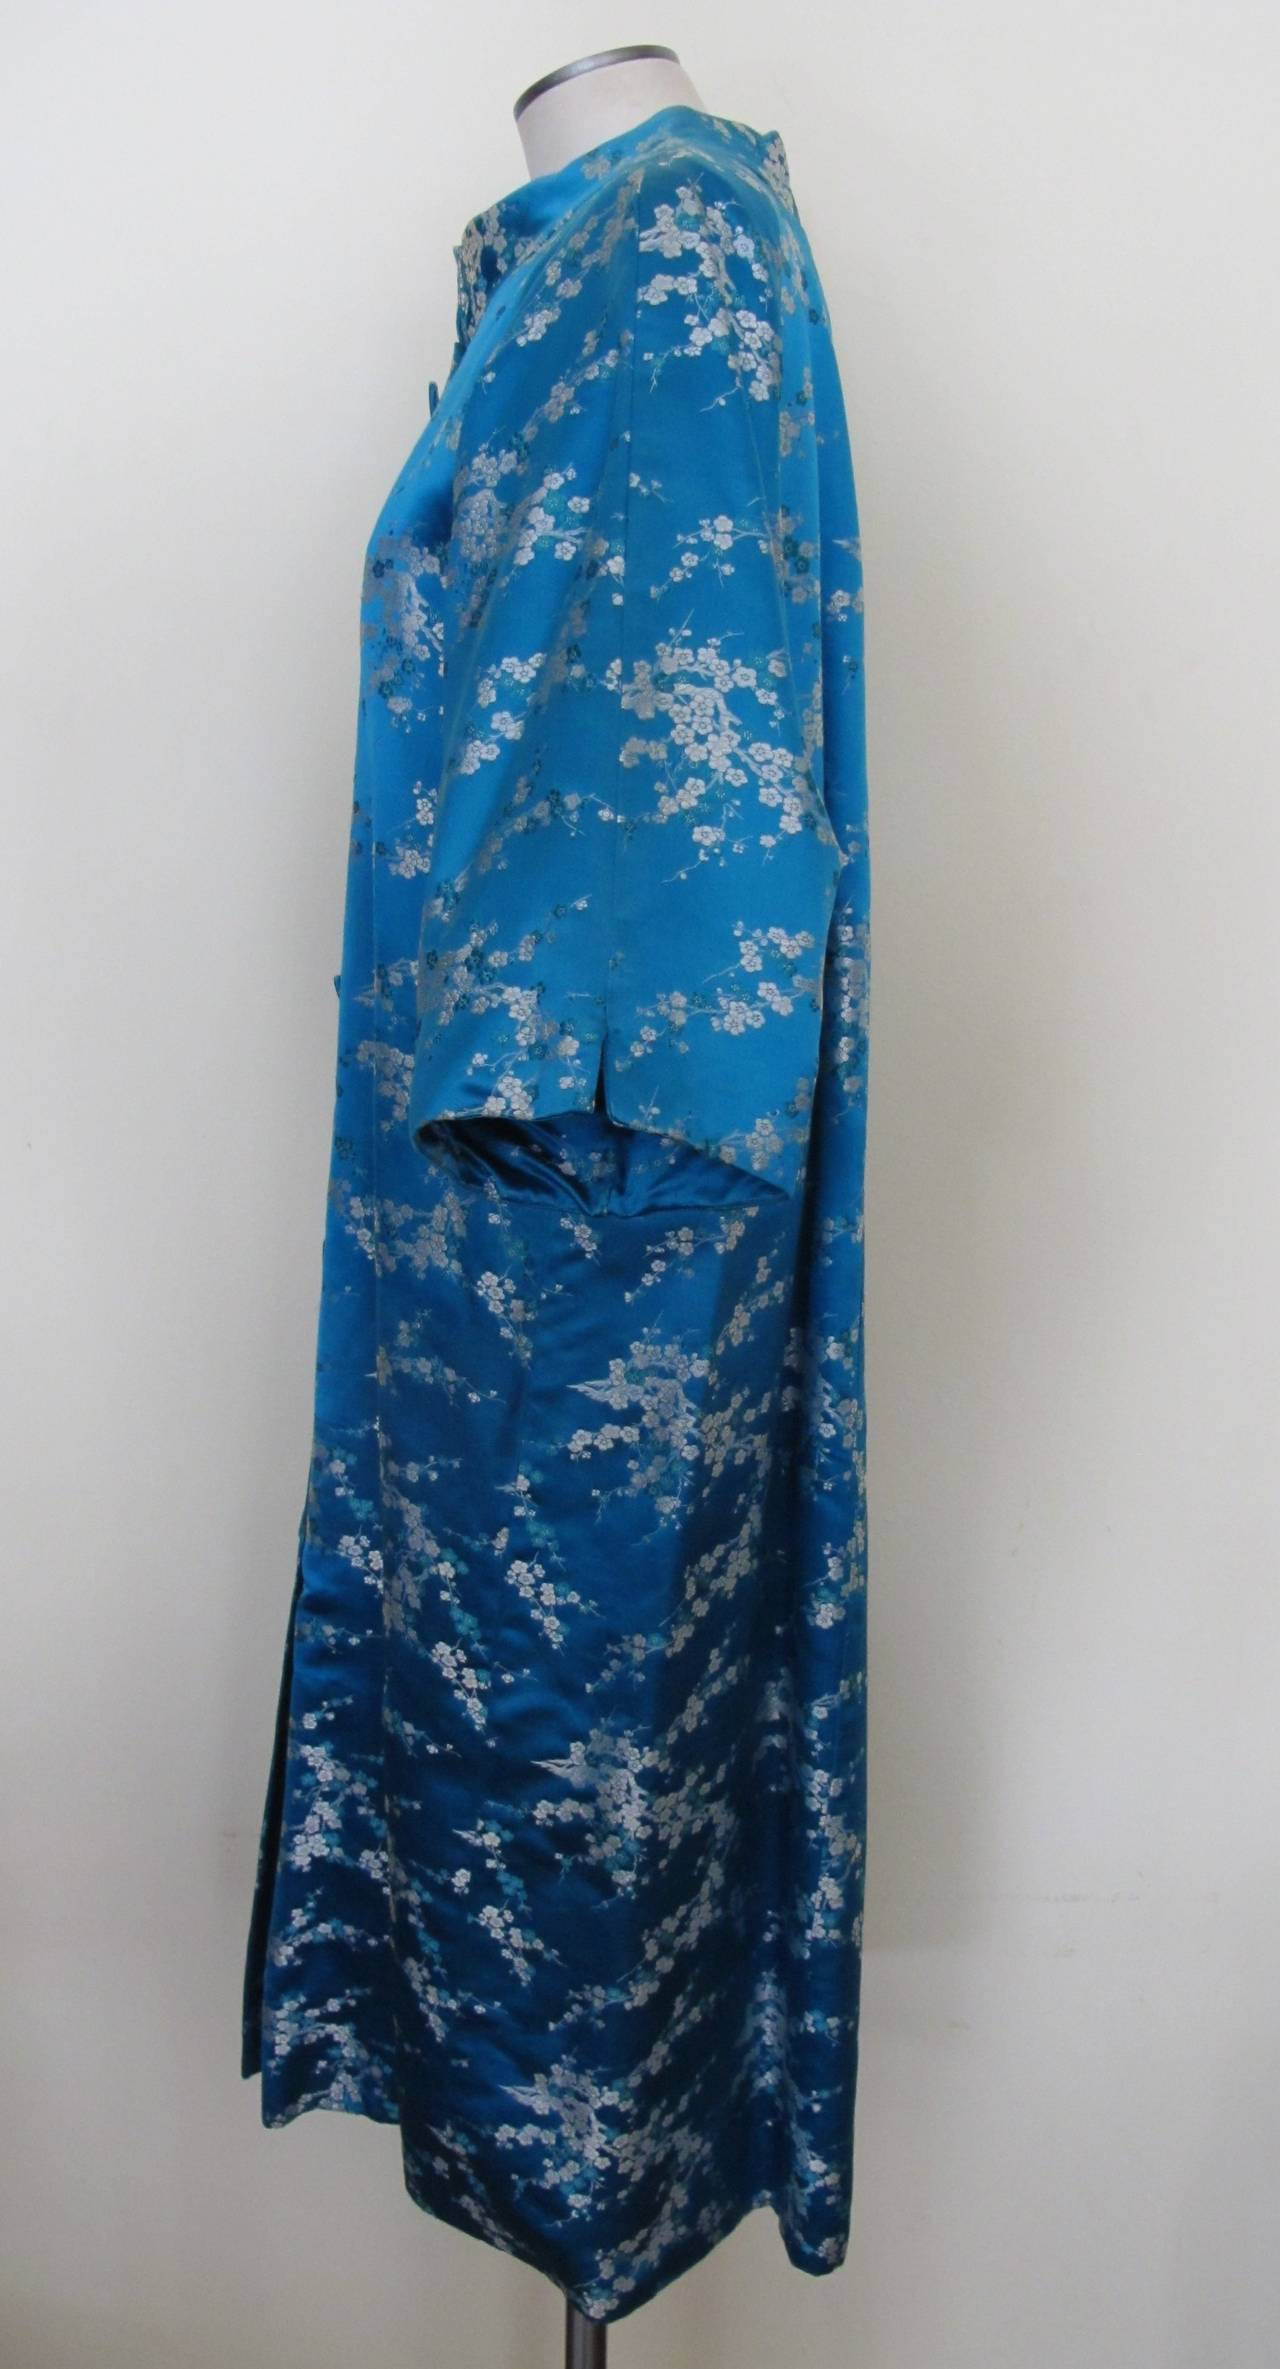 1945 Family Japanese Heirloom Turquoise Blue Robe 2